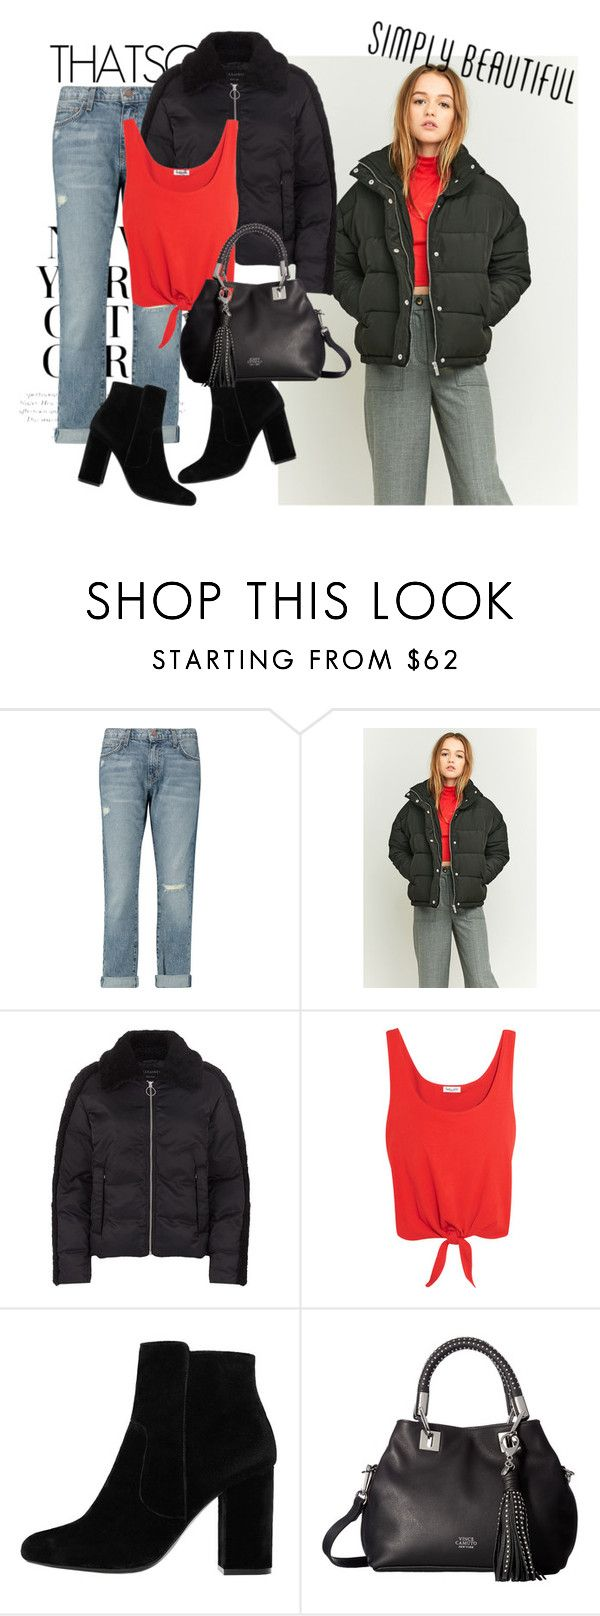 """""""red hot trends"""" by smillafrilla ❤ liked on Polyvore featuring H&M, Current/Elliott, Light Before Dark, AllSaints, Splendid, MANGO and Vince Camuto"""